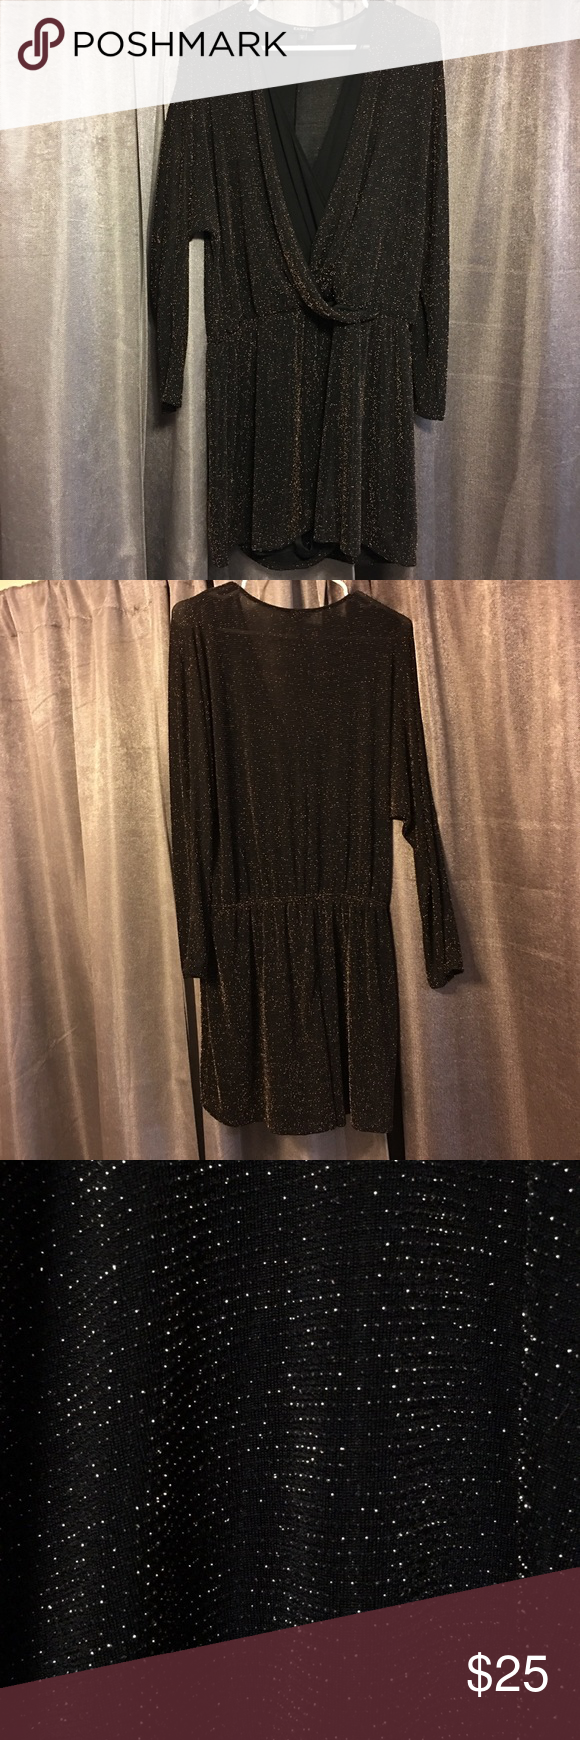 bae928d9 Express Glitter Romper large black gold I wore this once and it's super  comfortable and chic! It's very stretchy and could easily fit up to a size  16/18.